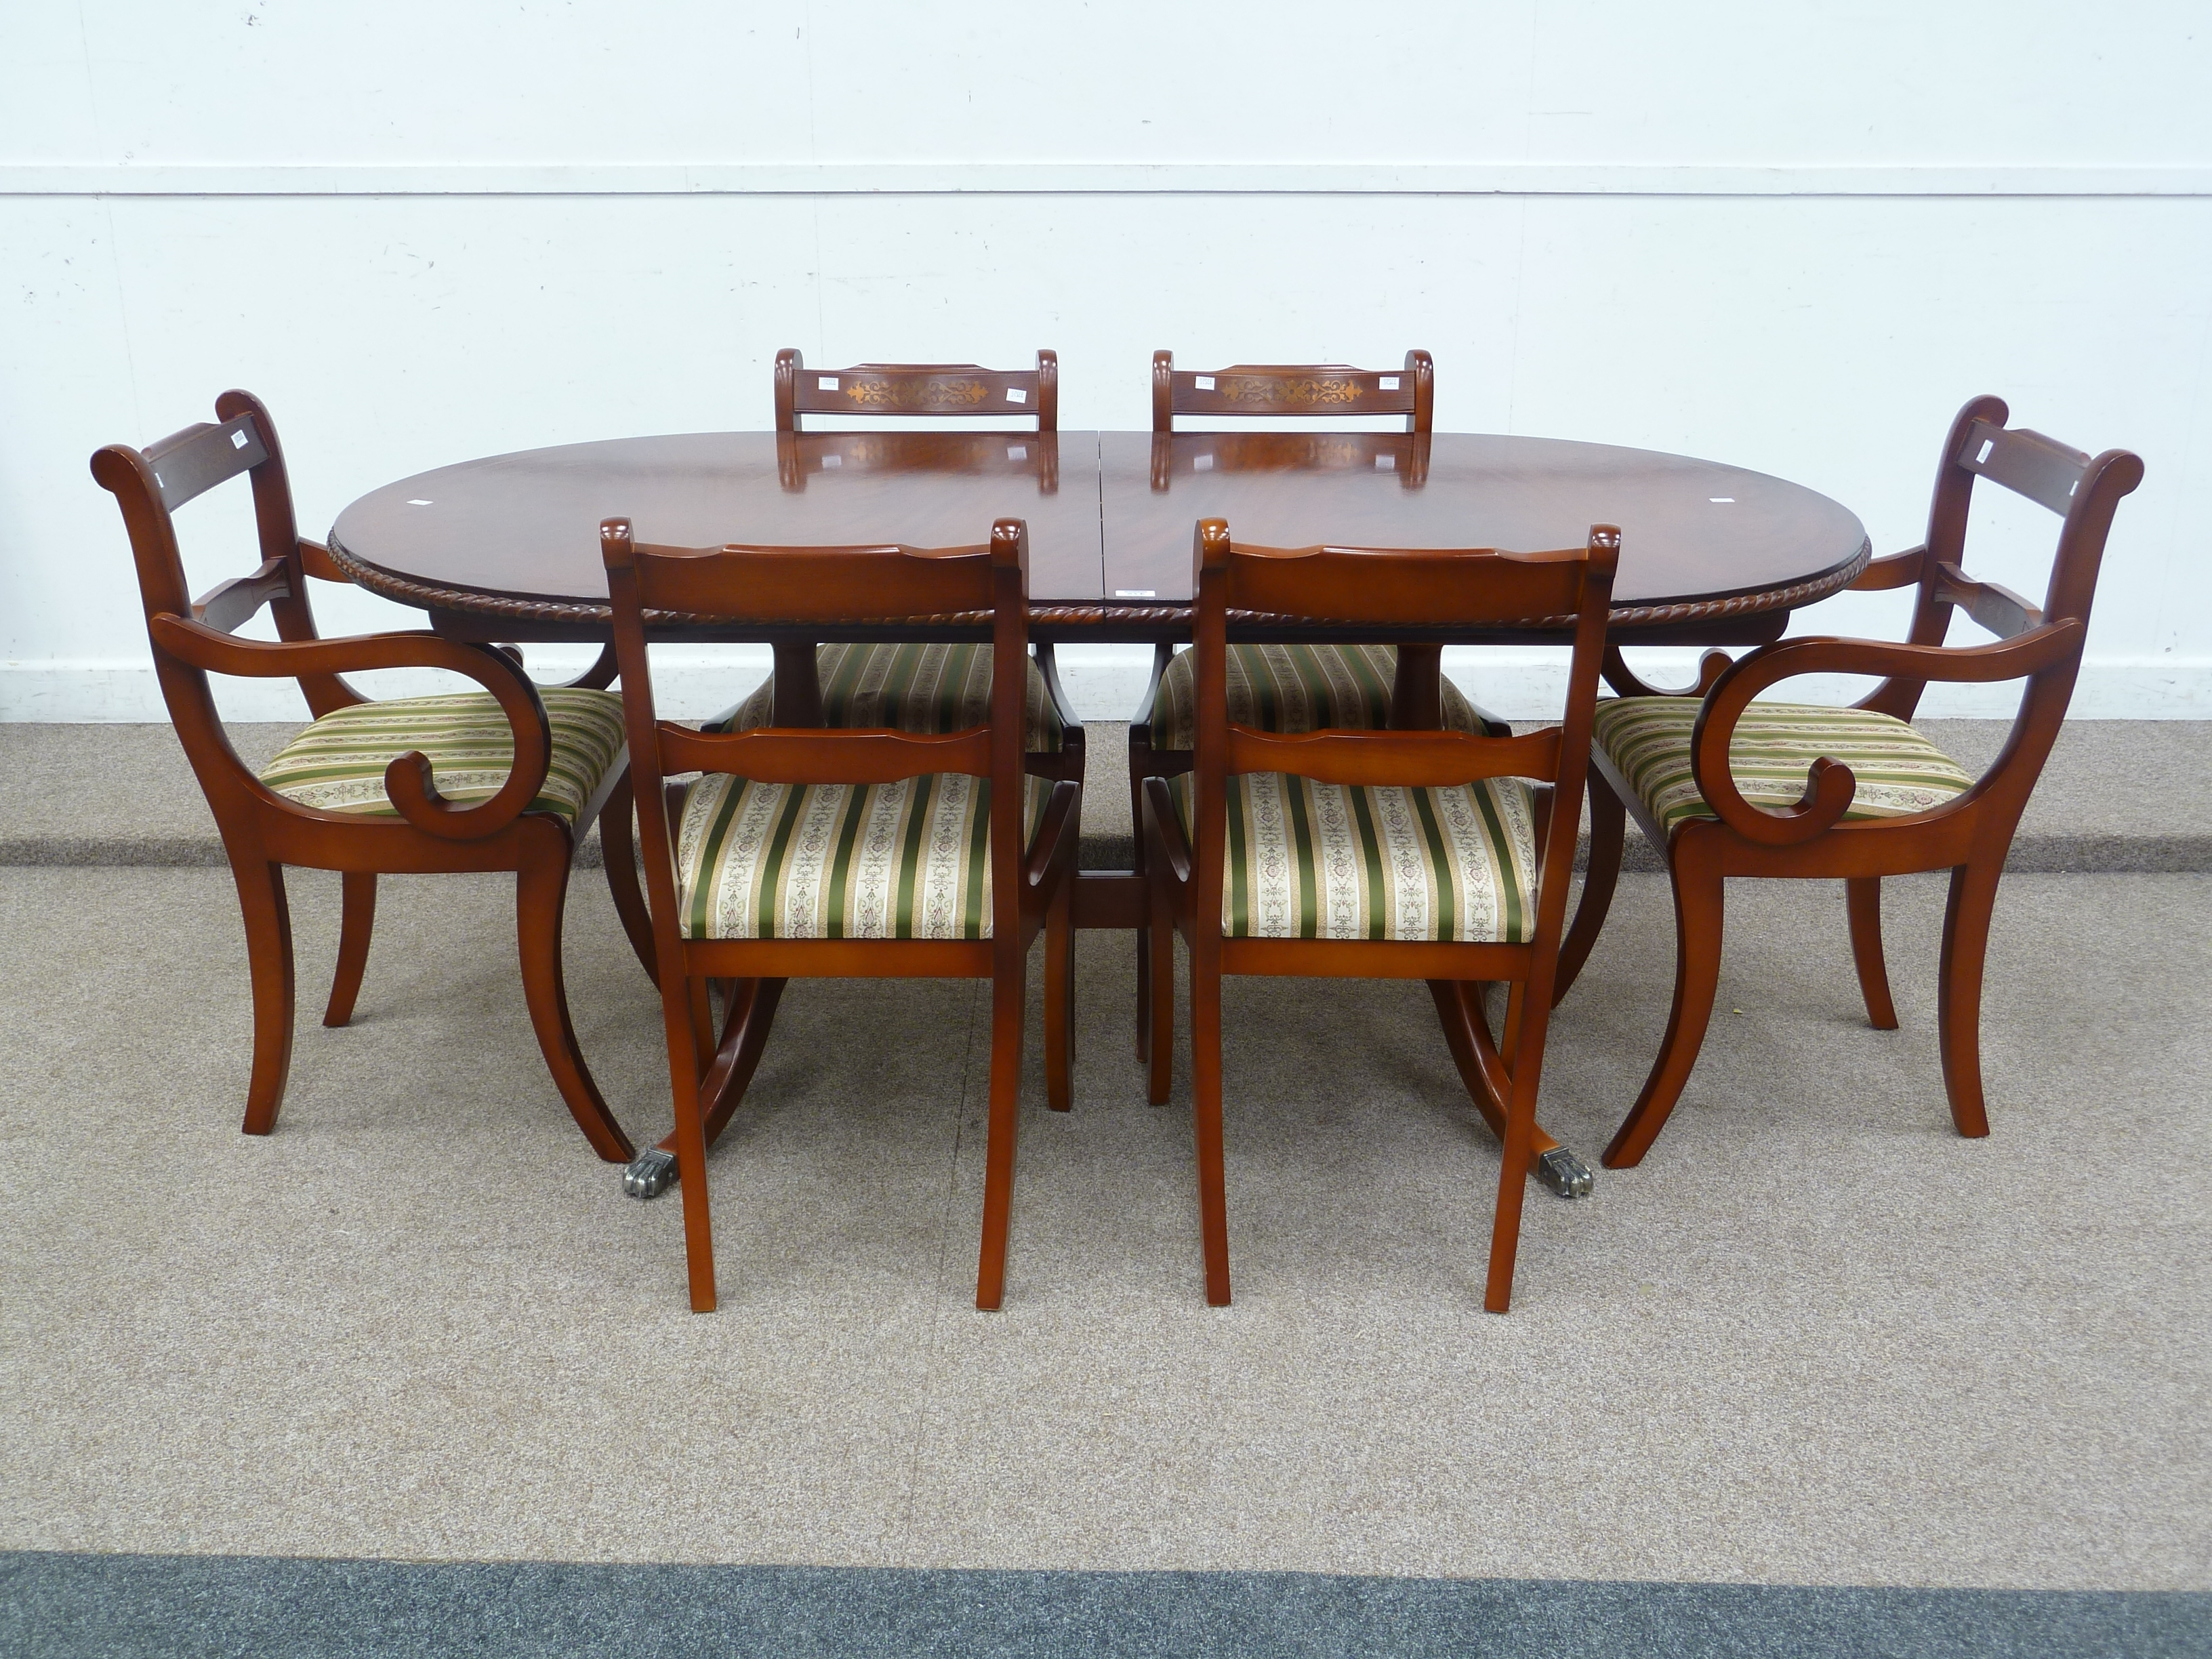 Beresford & Hicks Regency Style Reproduction Mahogany Extending Within Fashionable Mahogany Extending Dining Tables (Gallery 10 of 25)